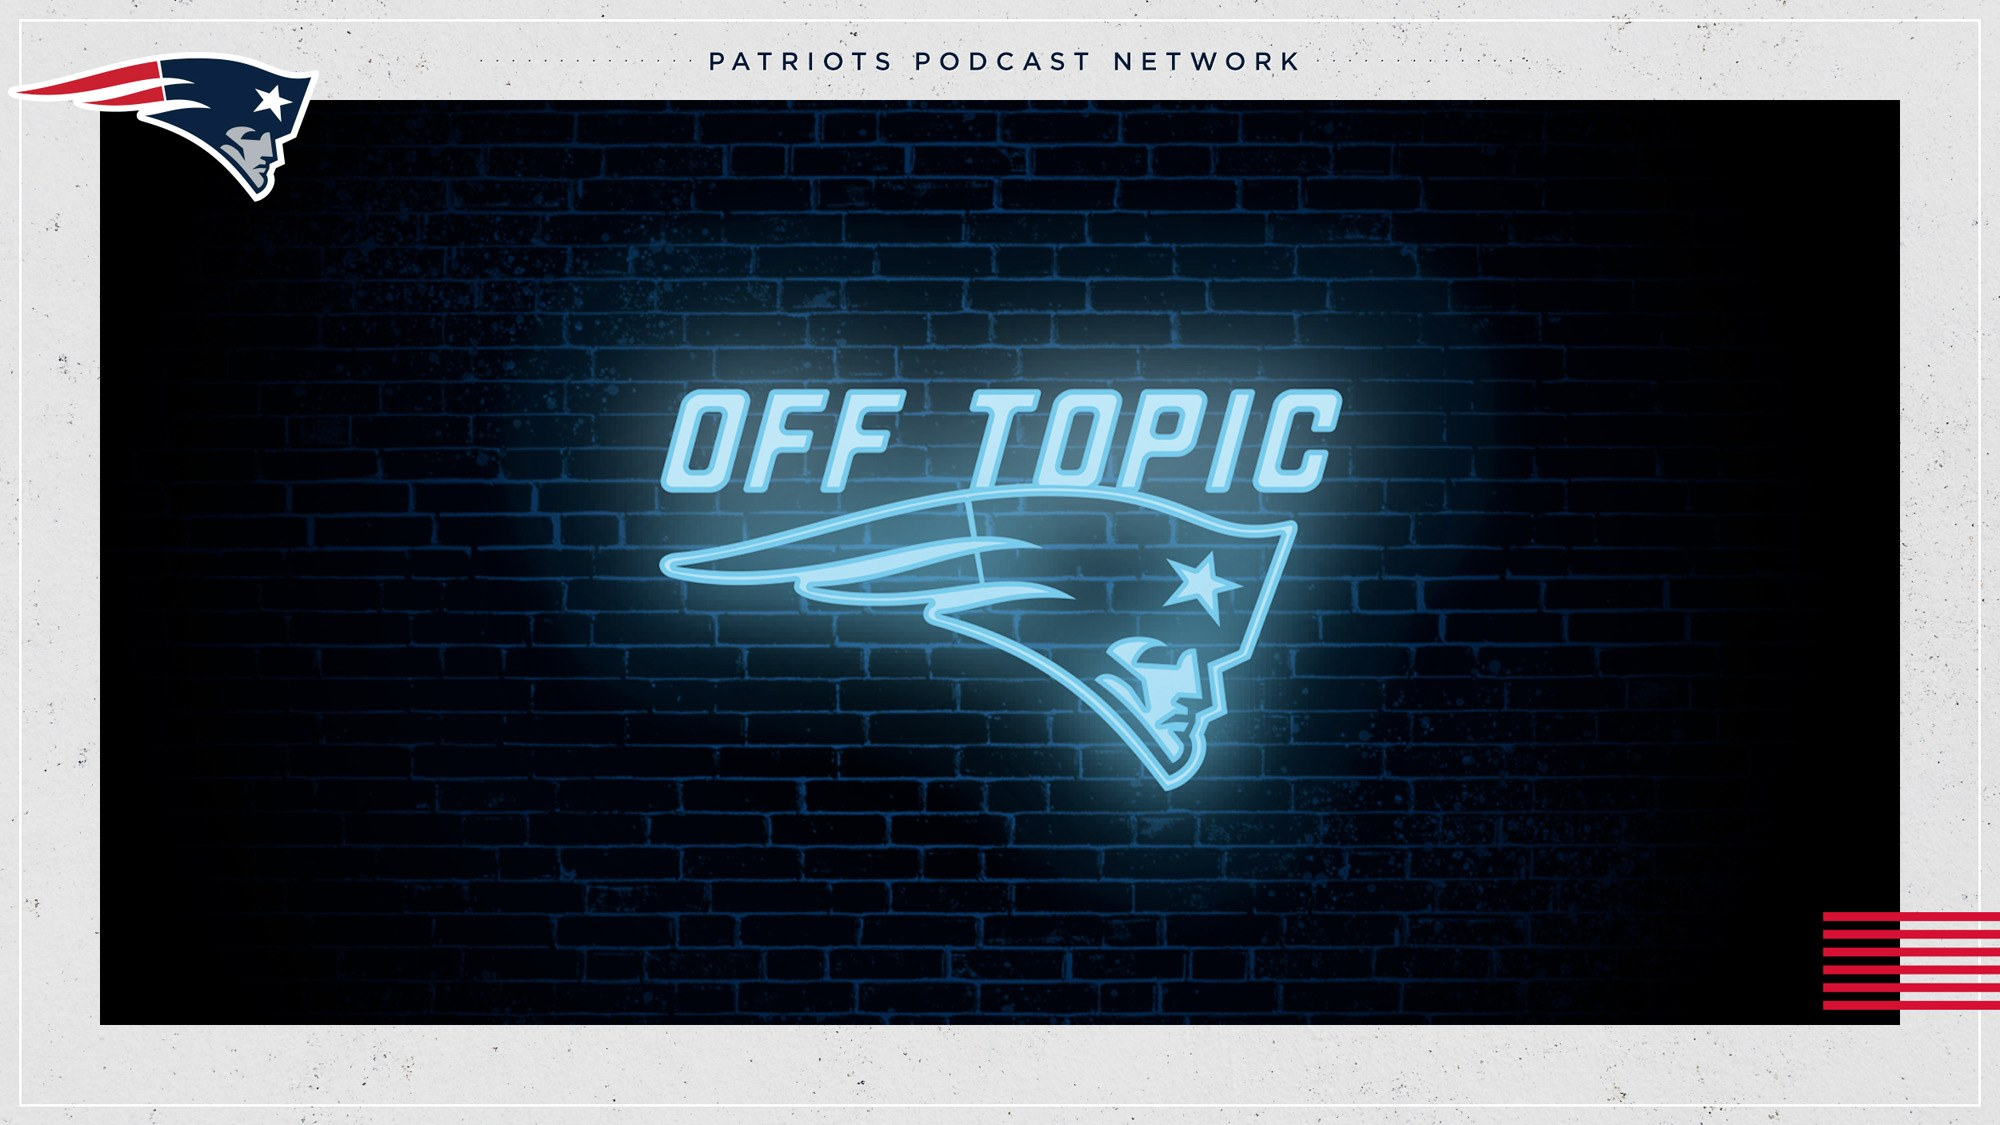 Patriots Off Topic